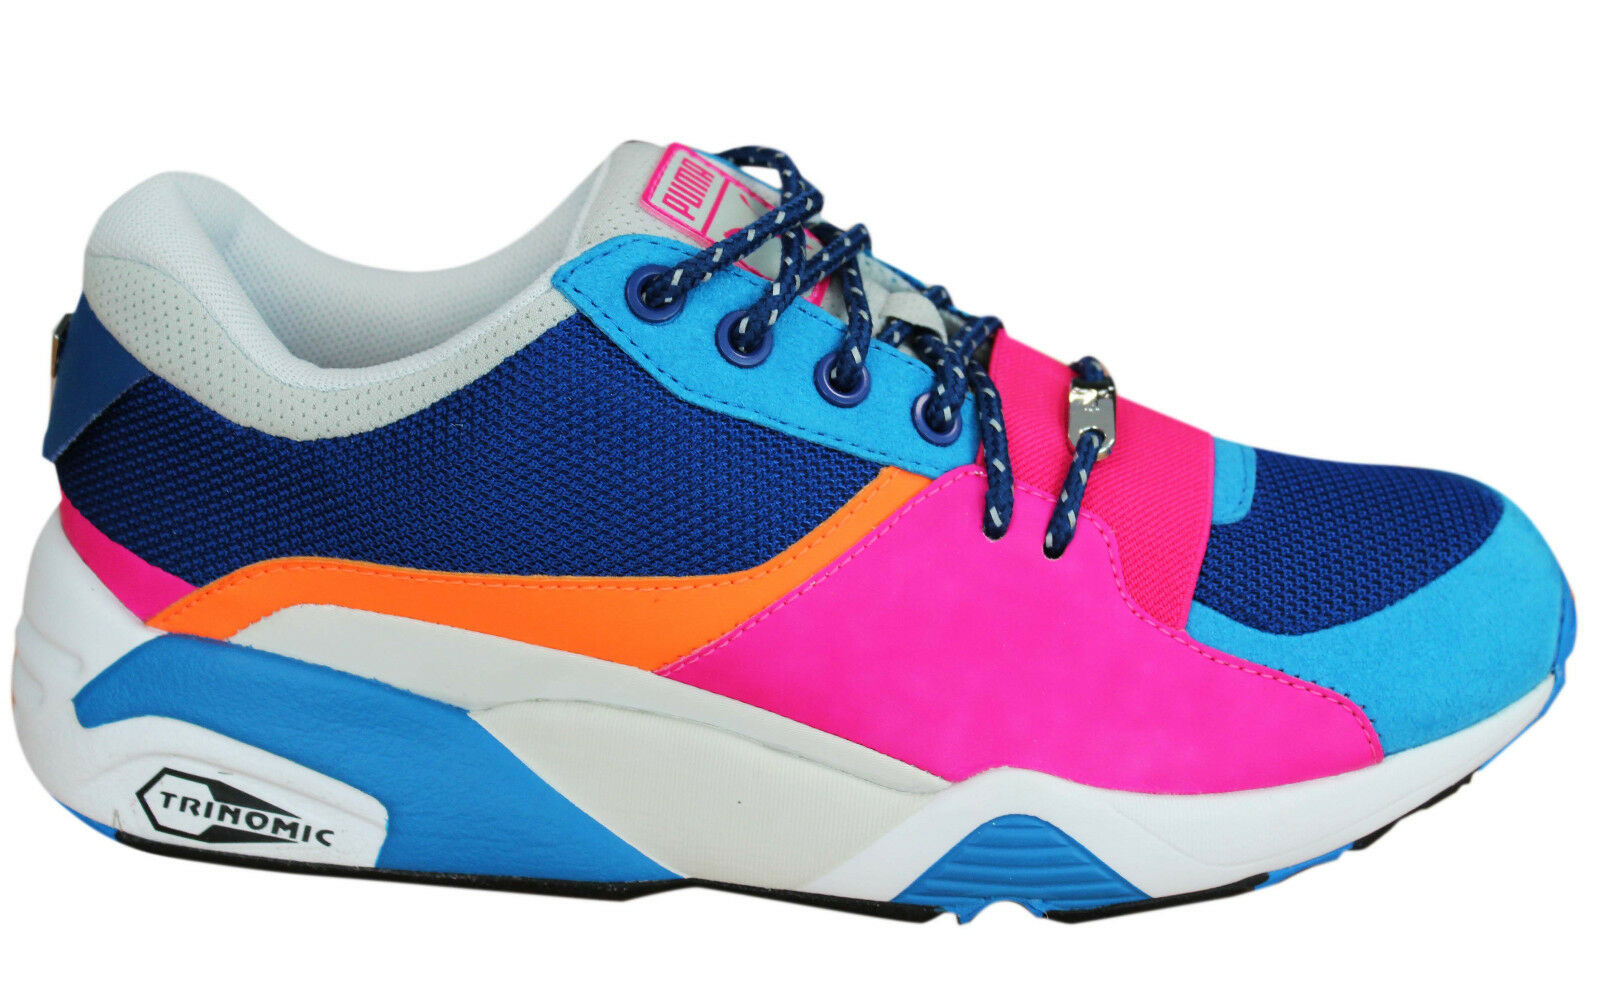 Puma Trinomic R698 Femme Party Trainers Lace Up chaussures Multi 361916 02 U60